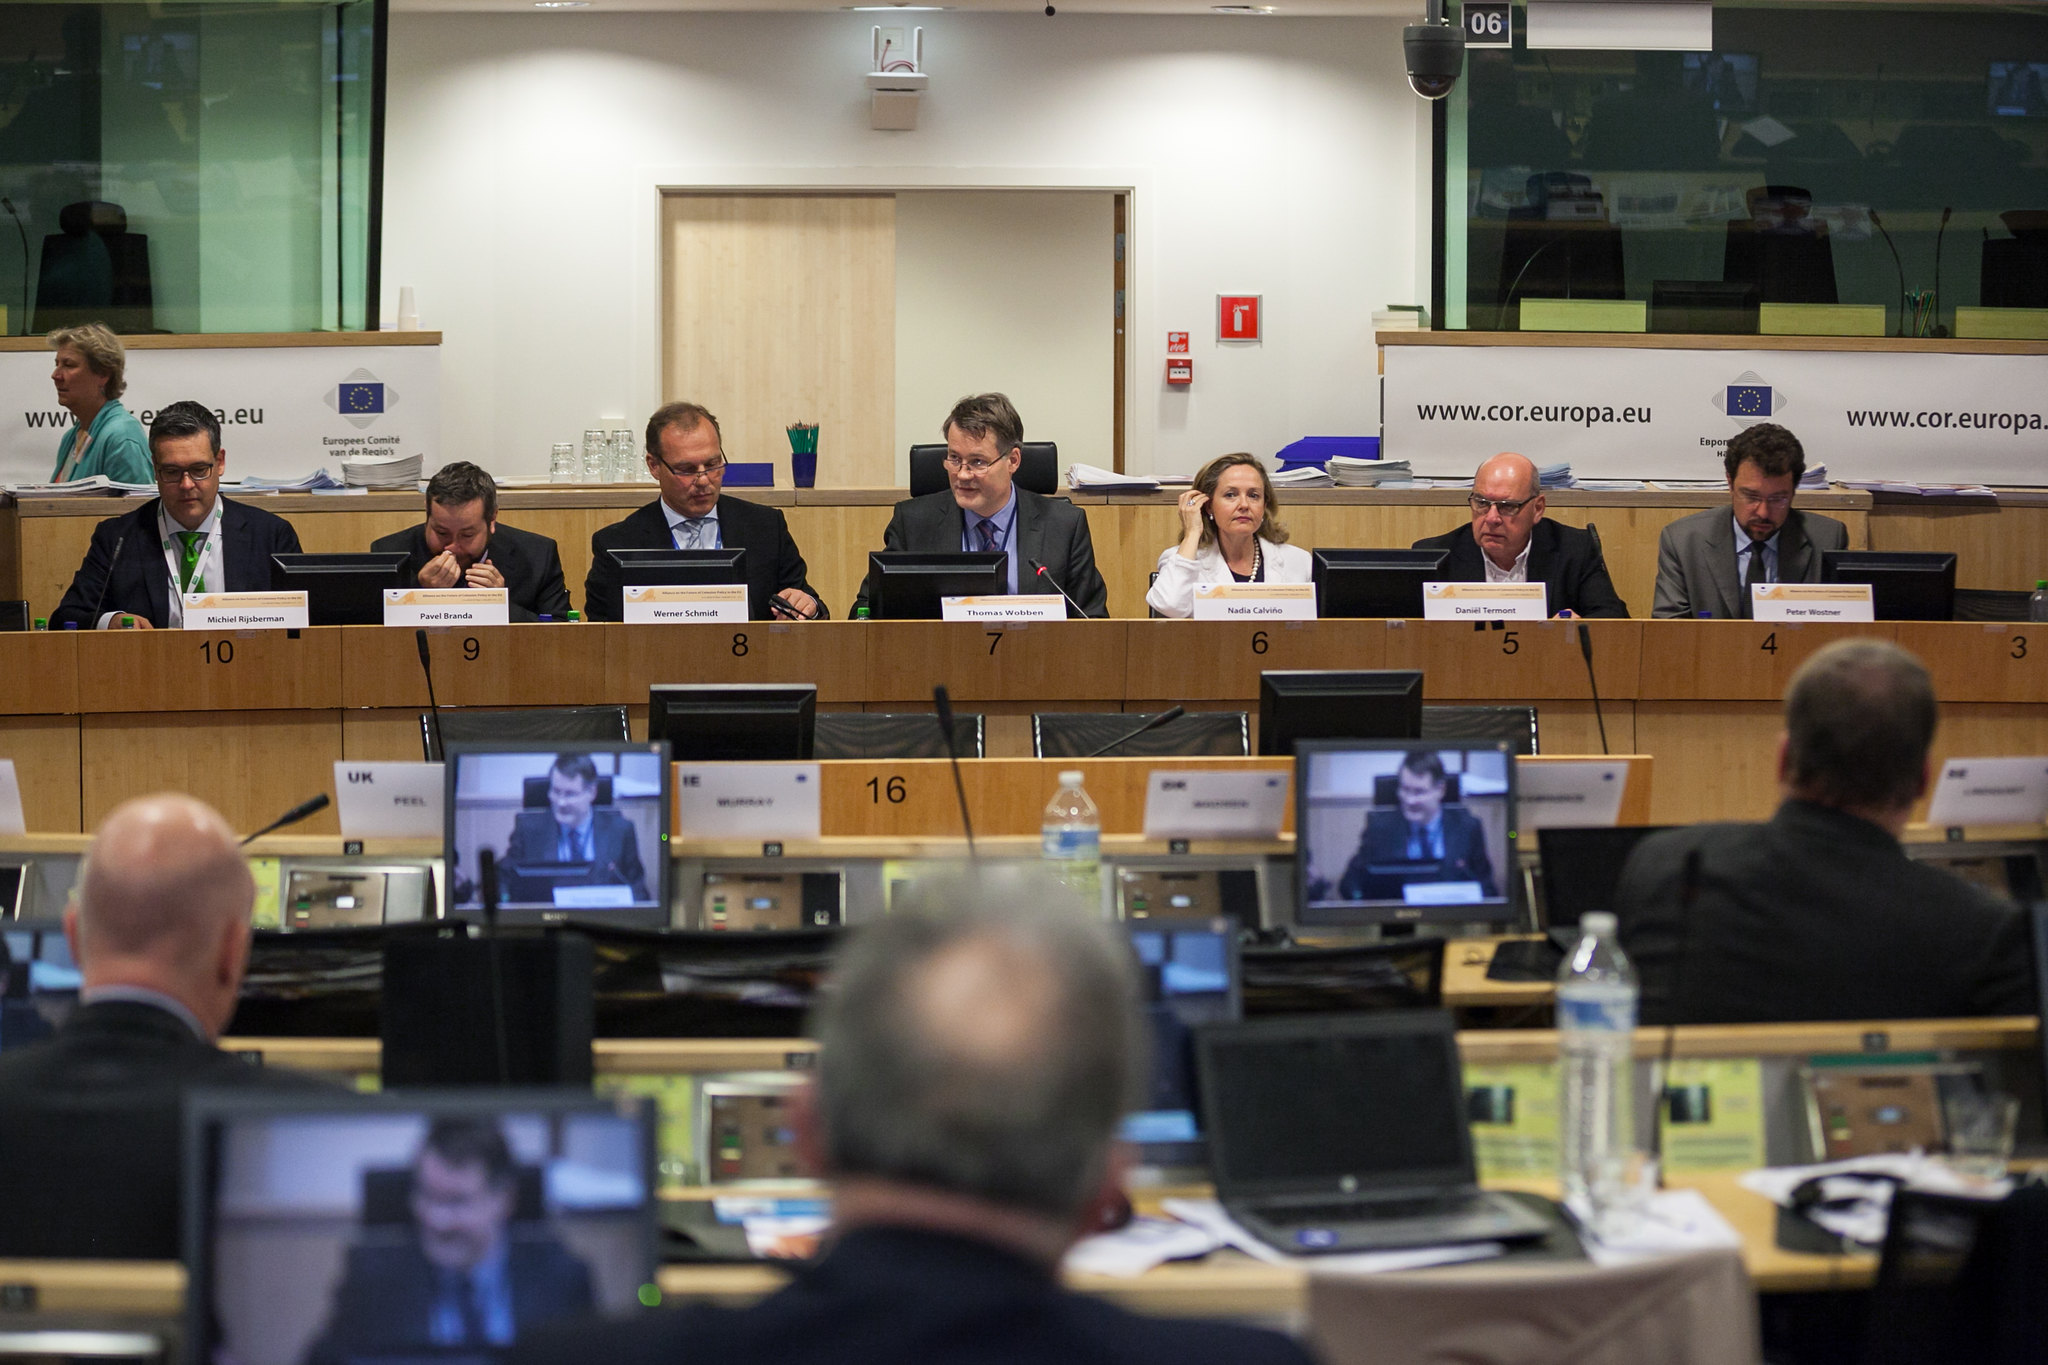 Alliance on the Future of Cohesion Policy in the EU